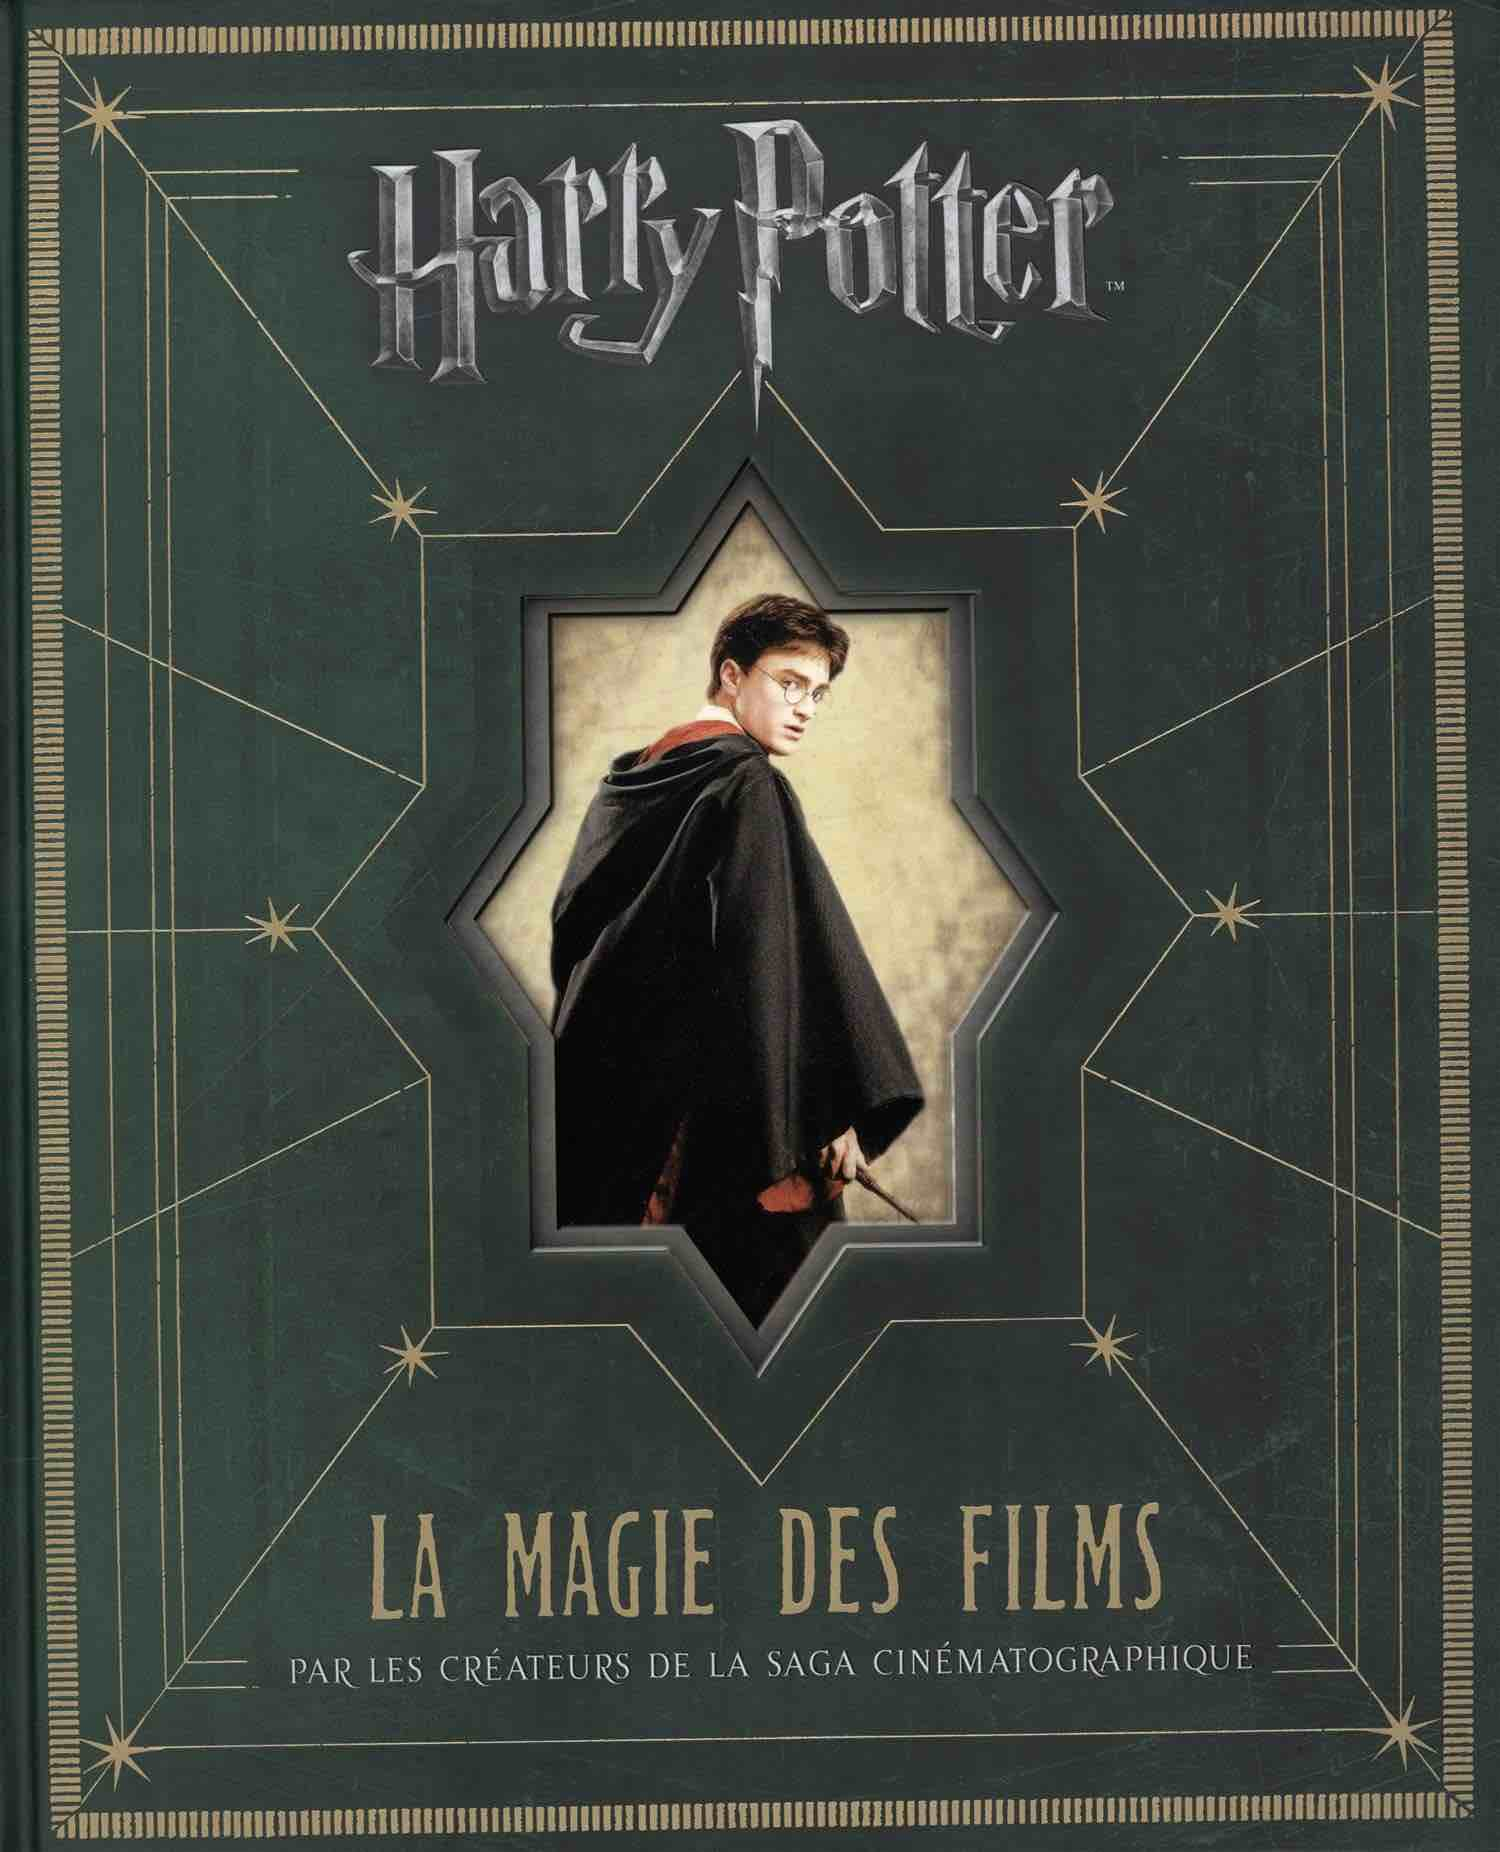 Harry Potter, La magie des films